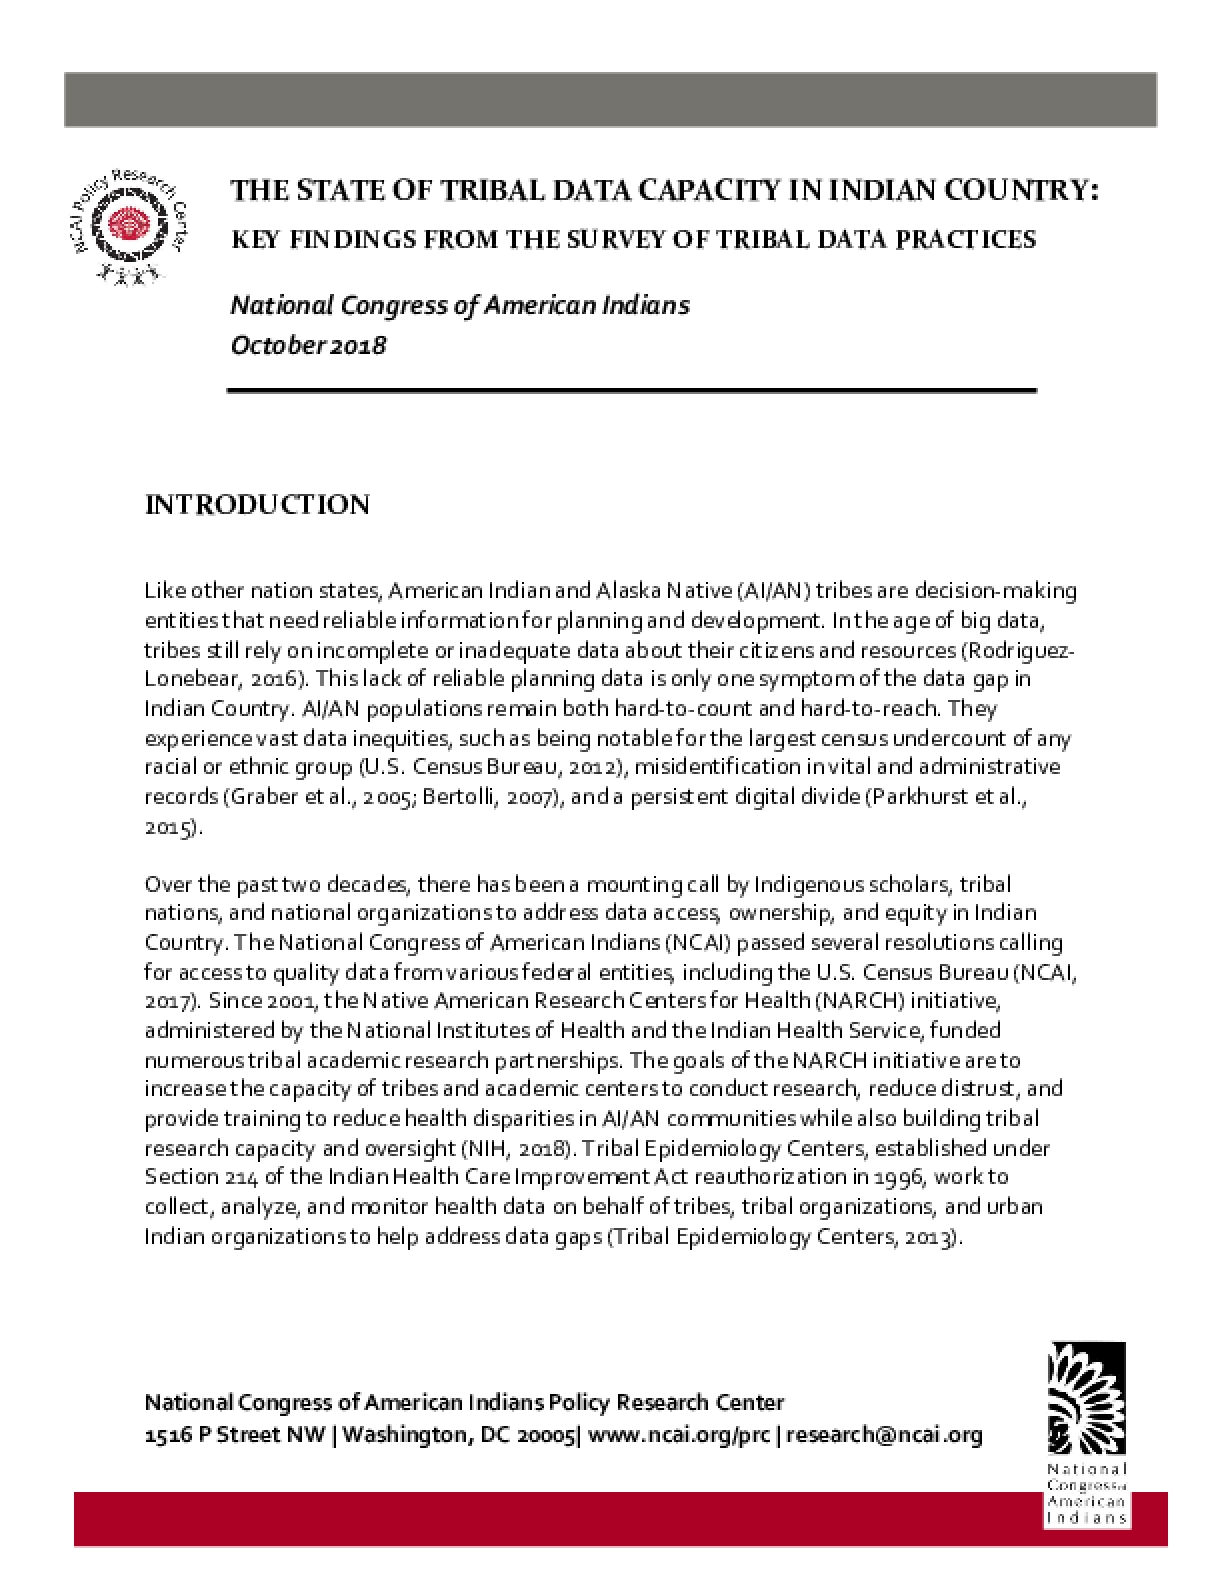 The State of Tribal Data Capacity in Indian Country: Key Findings from The Survey of Tribal Data Practices